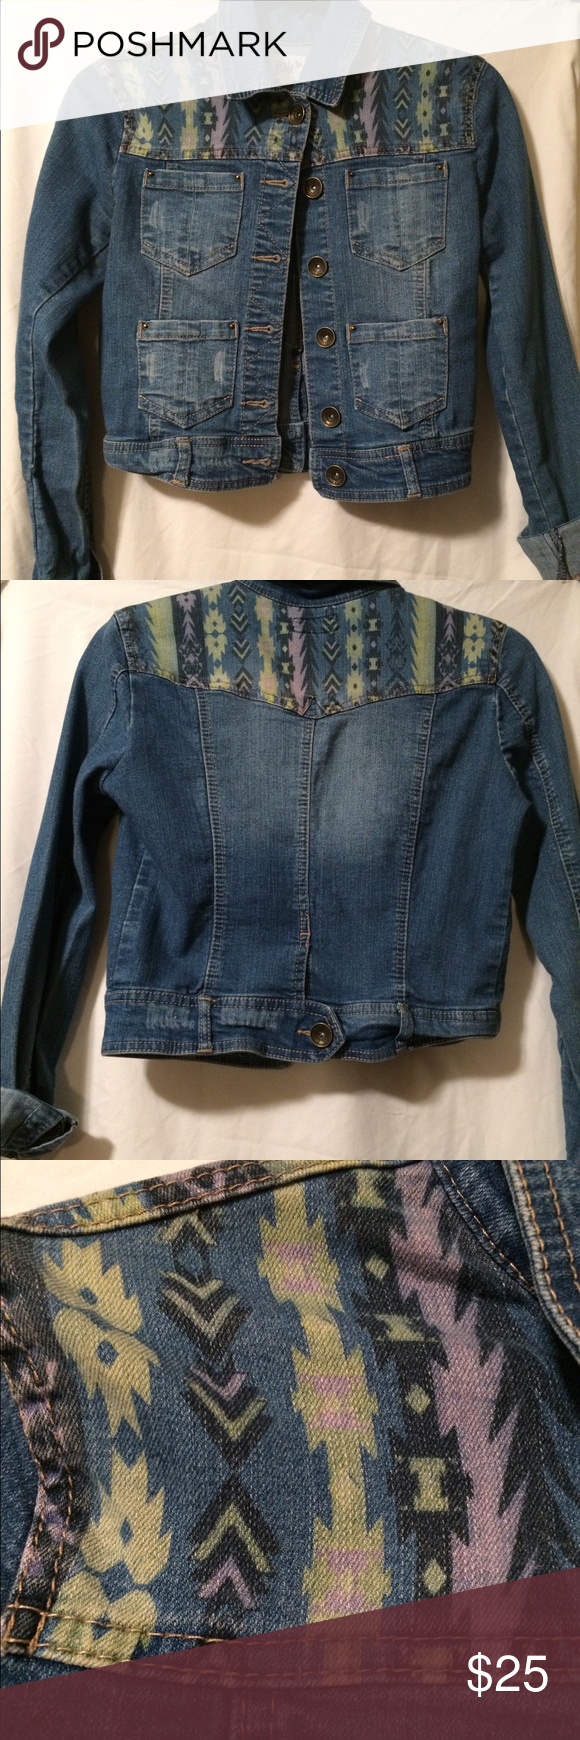 JOLT XS DENIM JACKET XS Denim jacket. Good condition, tribal ...